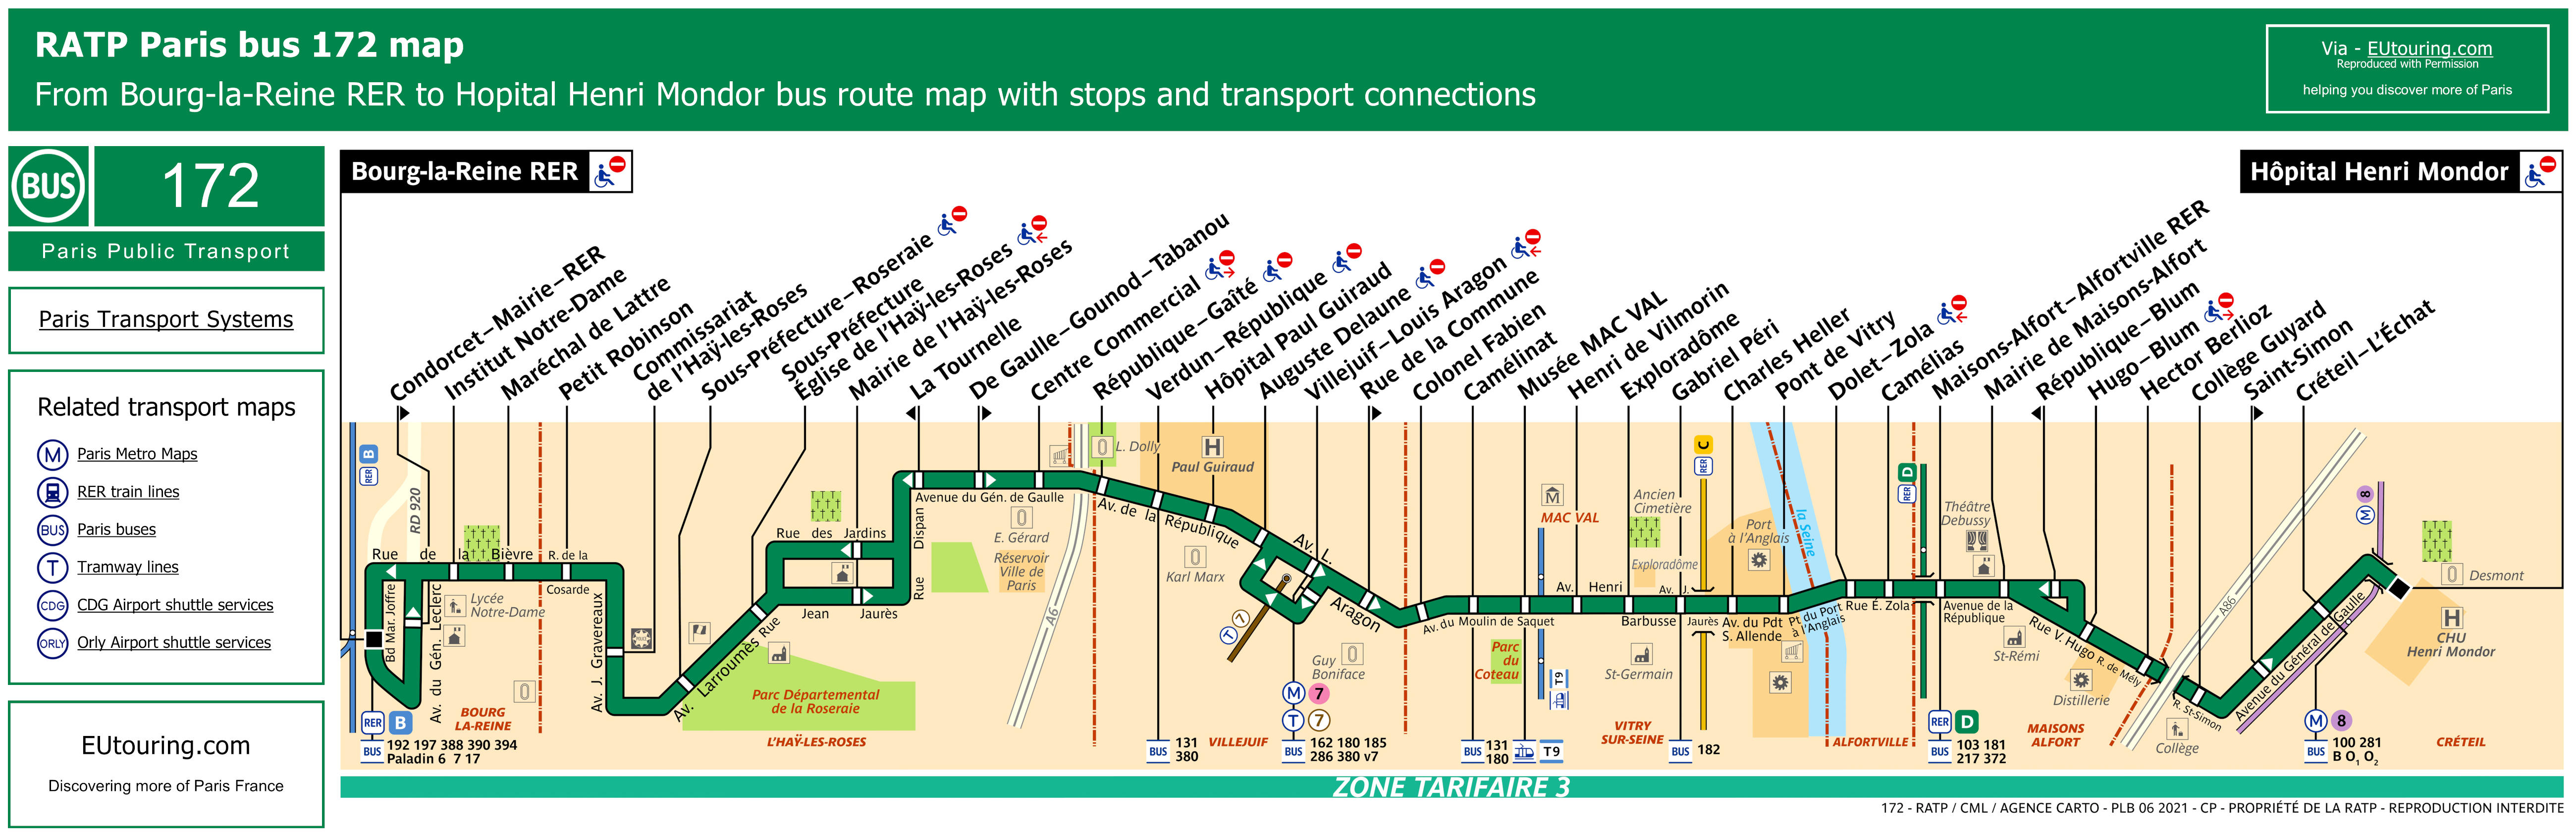 Ratp Bus Maps Timetables For Paris Bus Lines 170 To 179